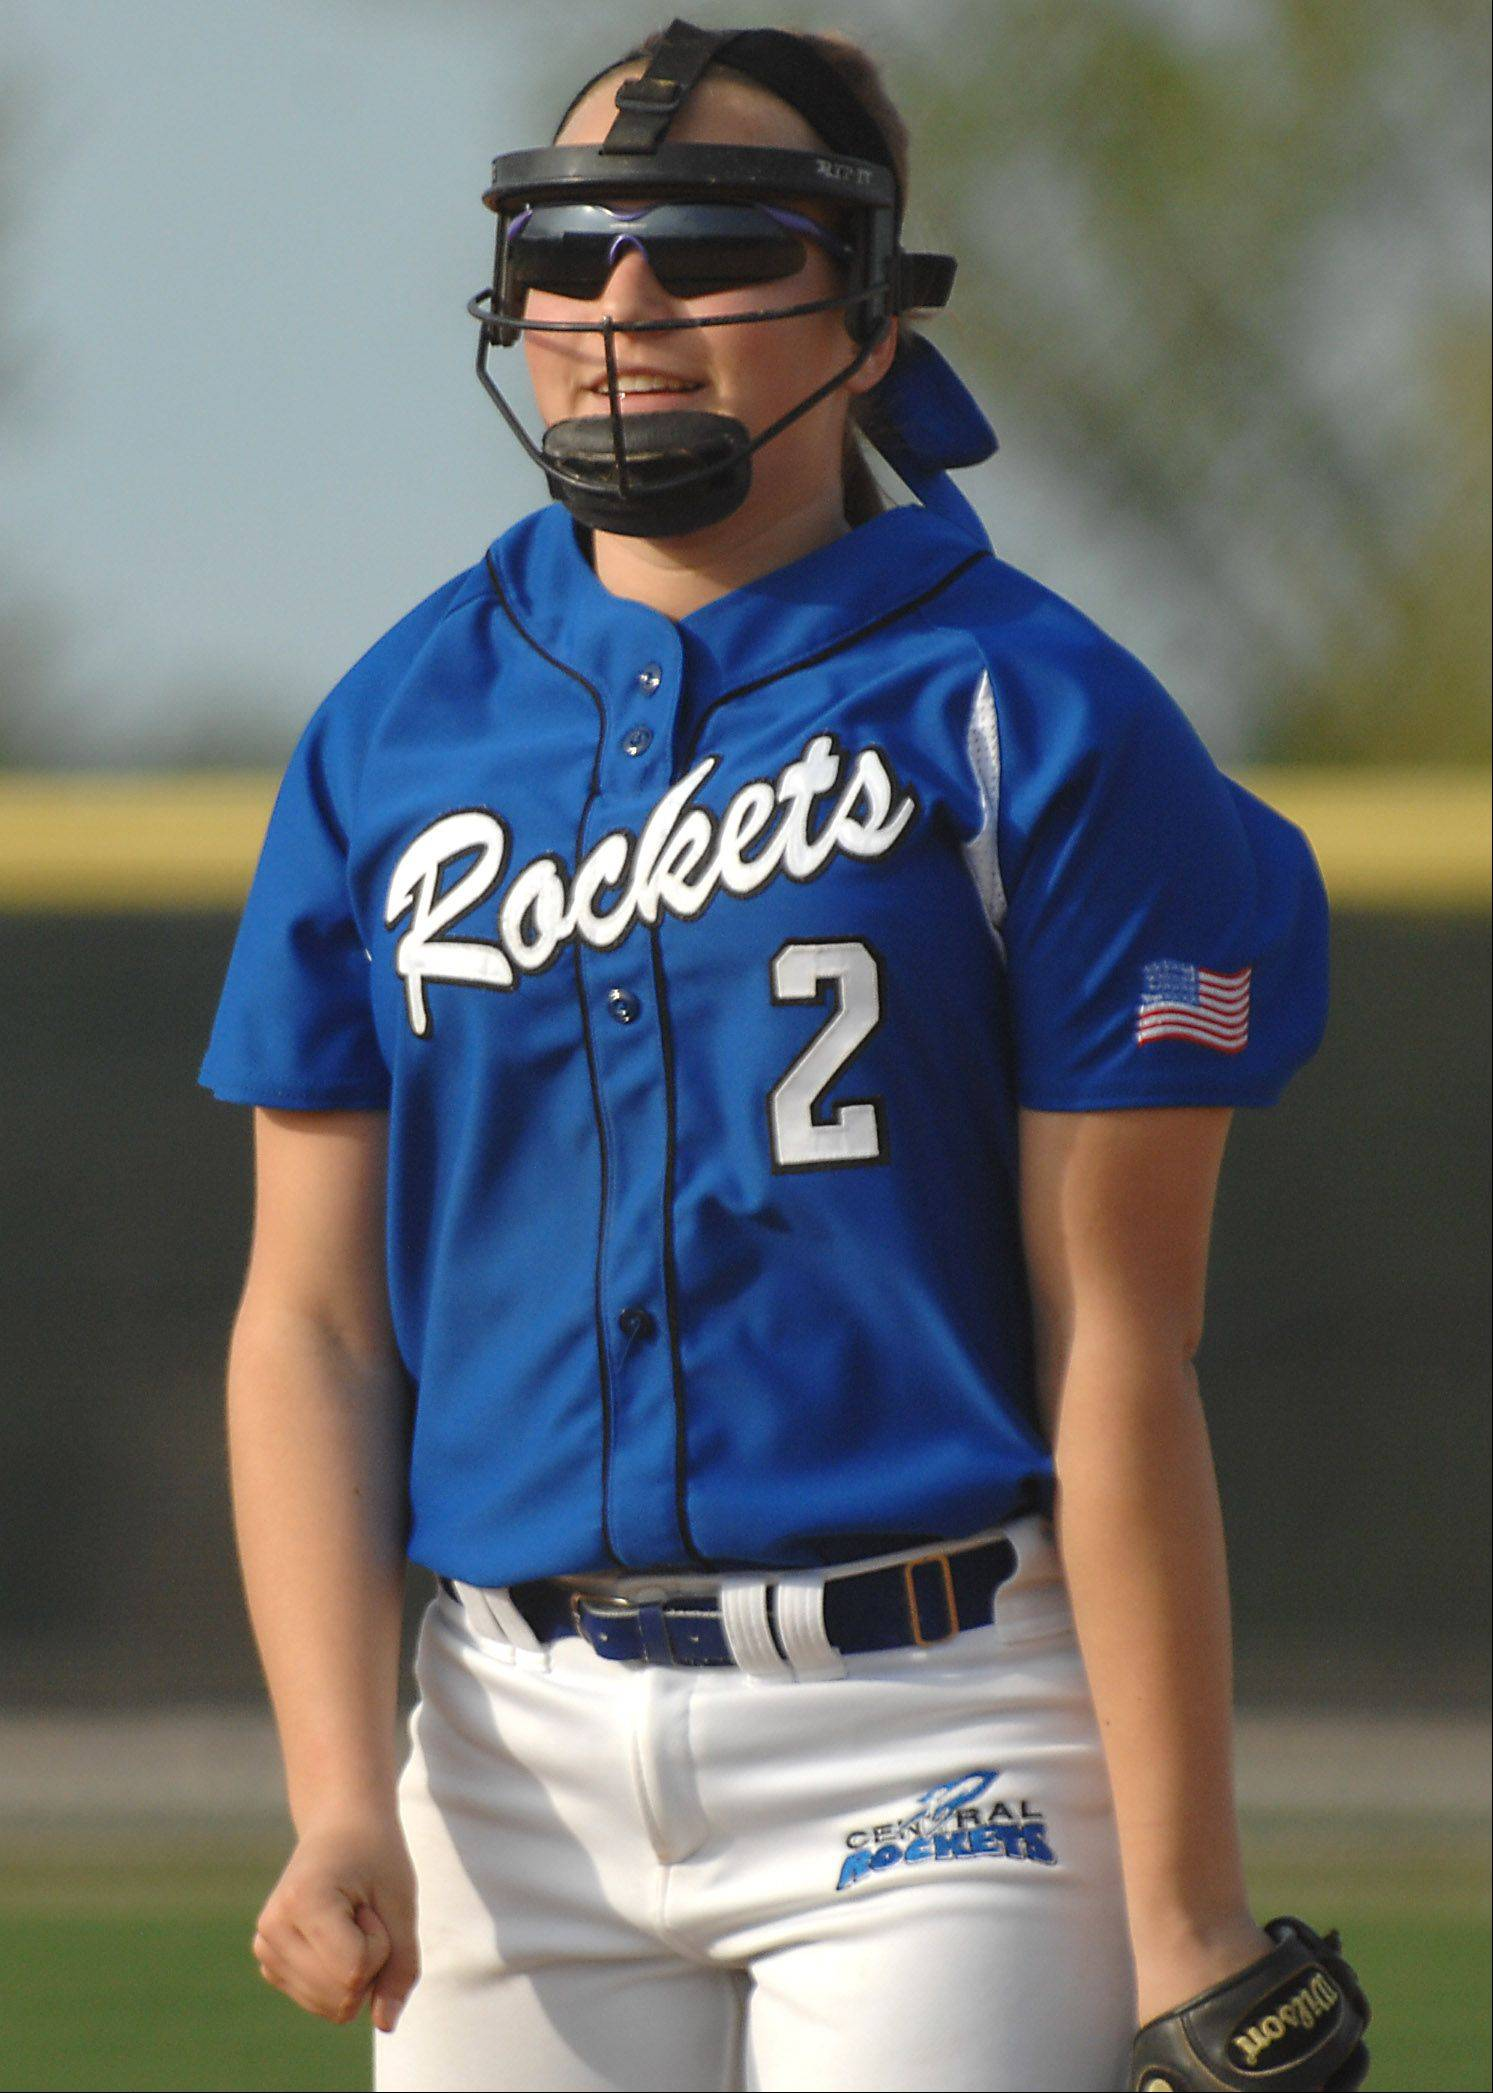 Burlington Central sophomore pitcher Angie Morrow will miss the 2013 high school softball season after undergoing shoulder surgery. Morrow, who has verbally committed to Wisconsin, was 15-4 for the Rockets last season.